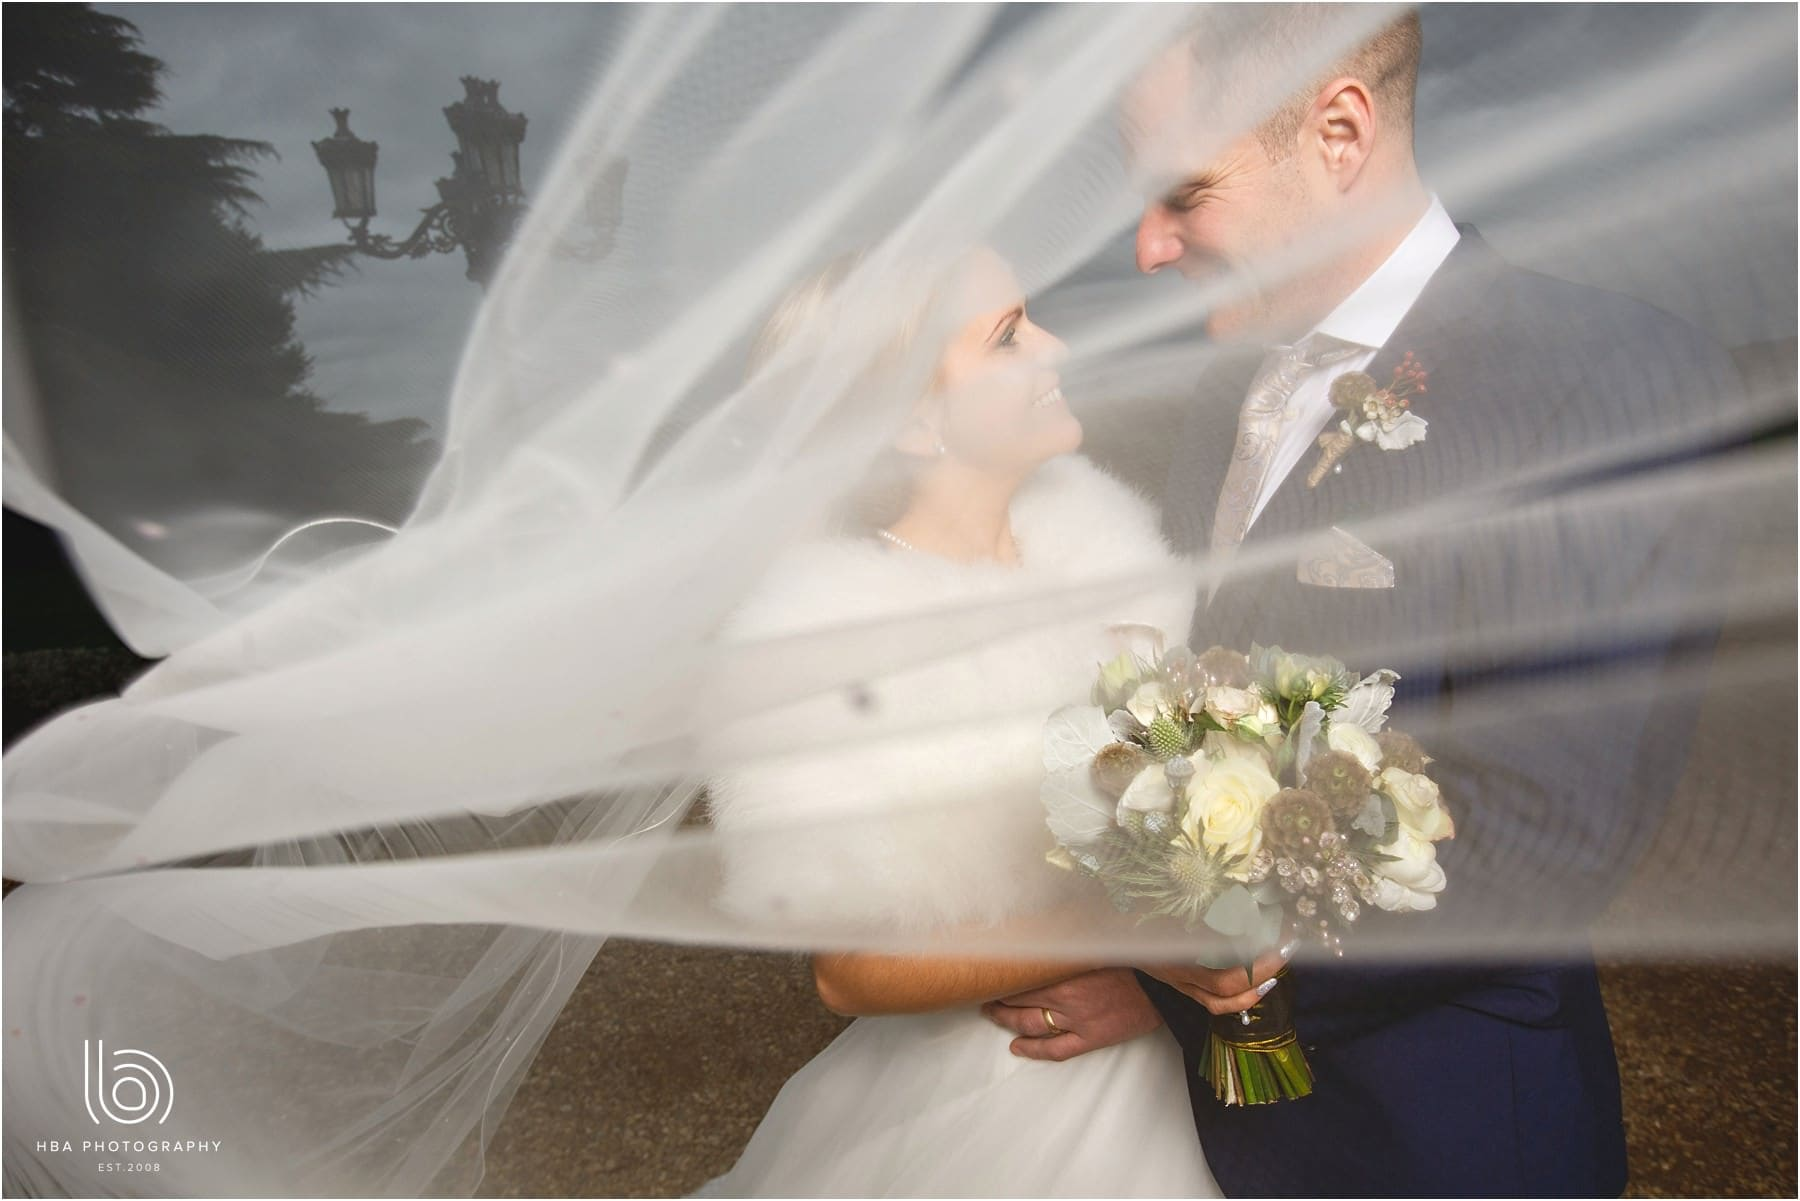 The bride and groom holding flowers